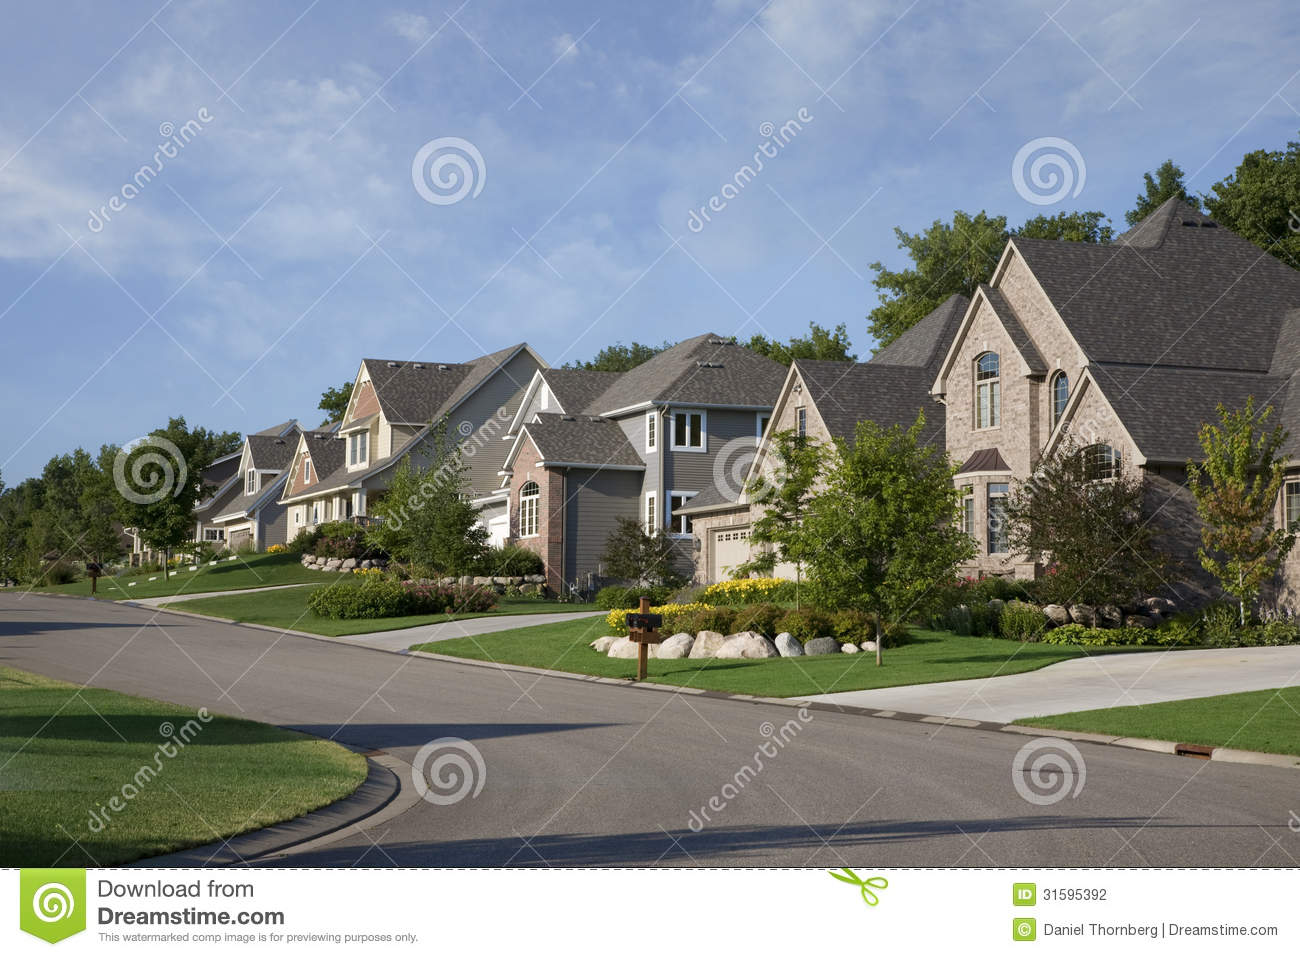 Houses on upscale suburban street in morning sunlight